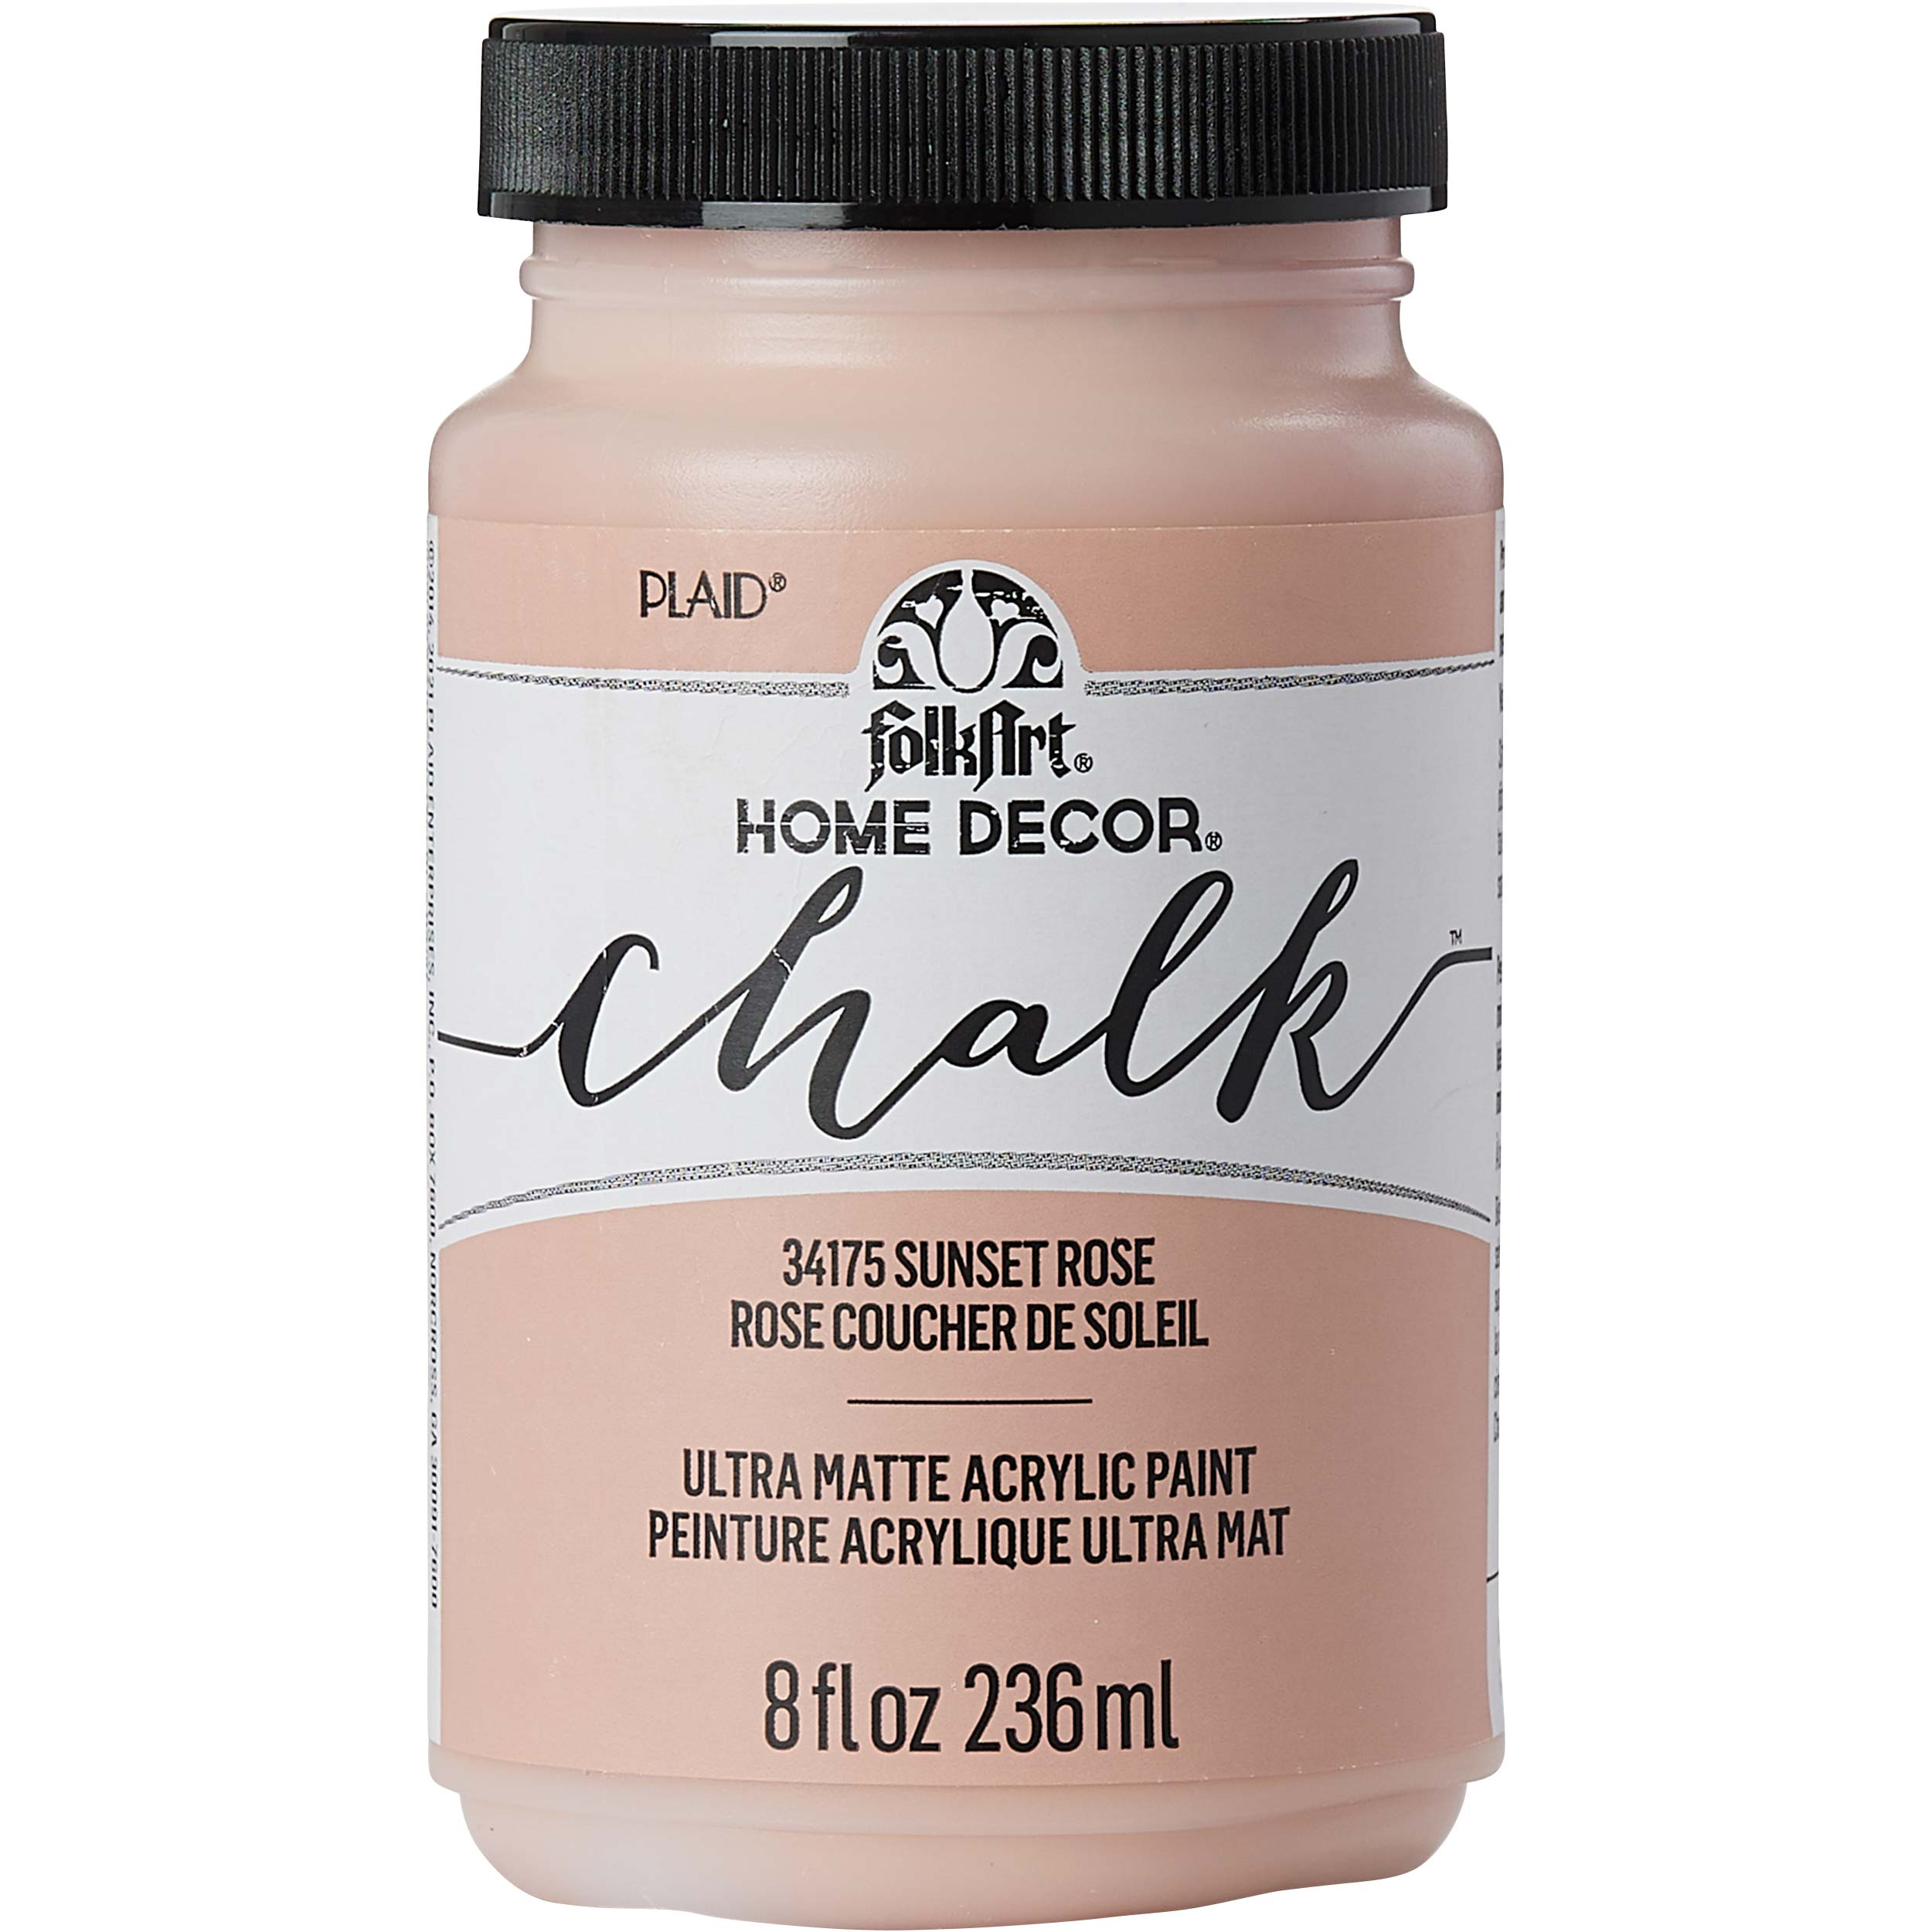 FolkArt ® Home Decor™  Chalk - Sunset Rose, 8 oz. - 34175